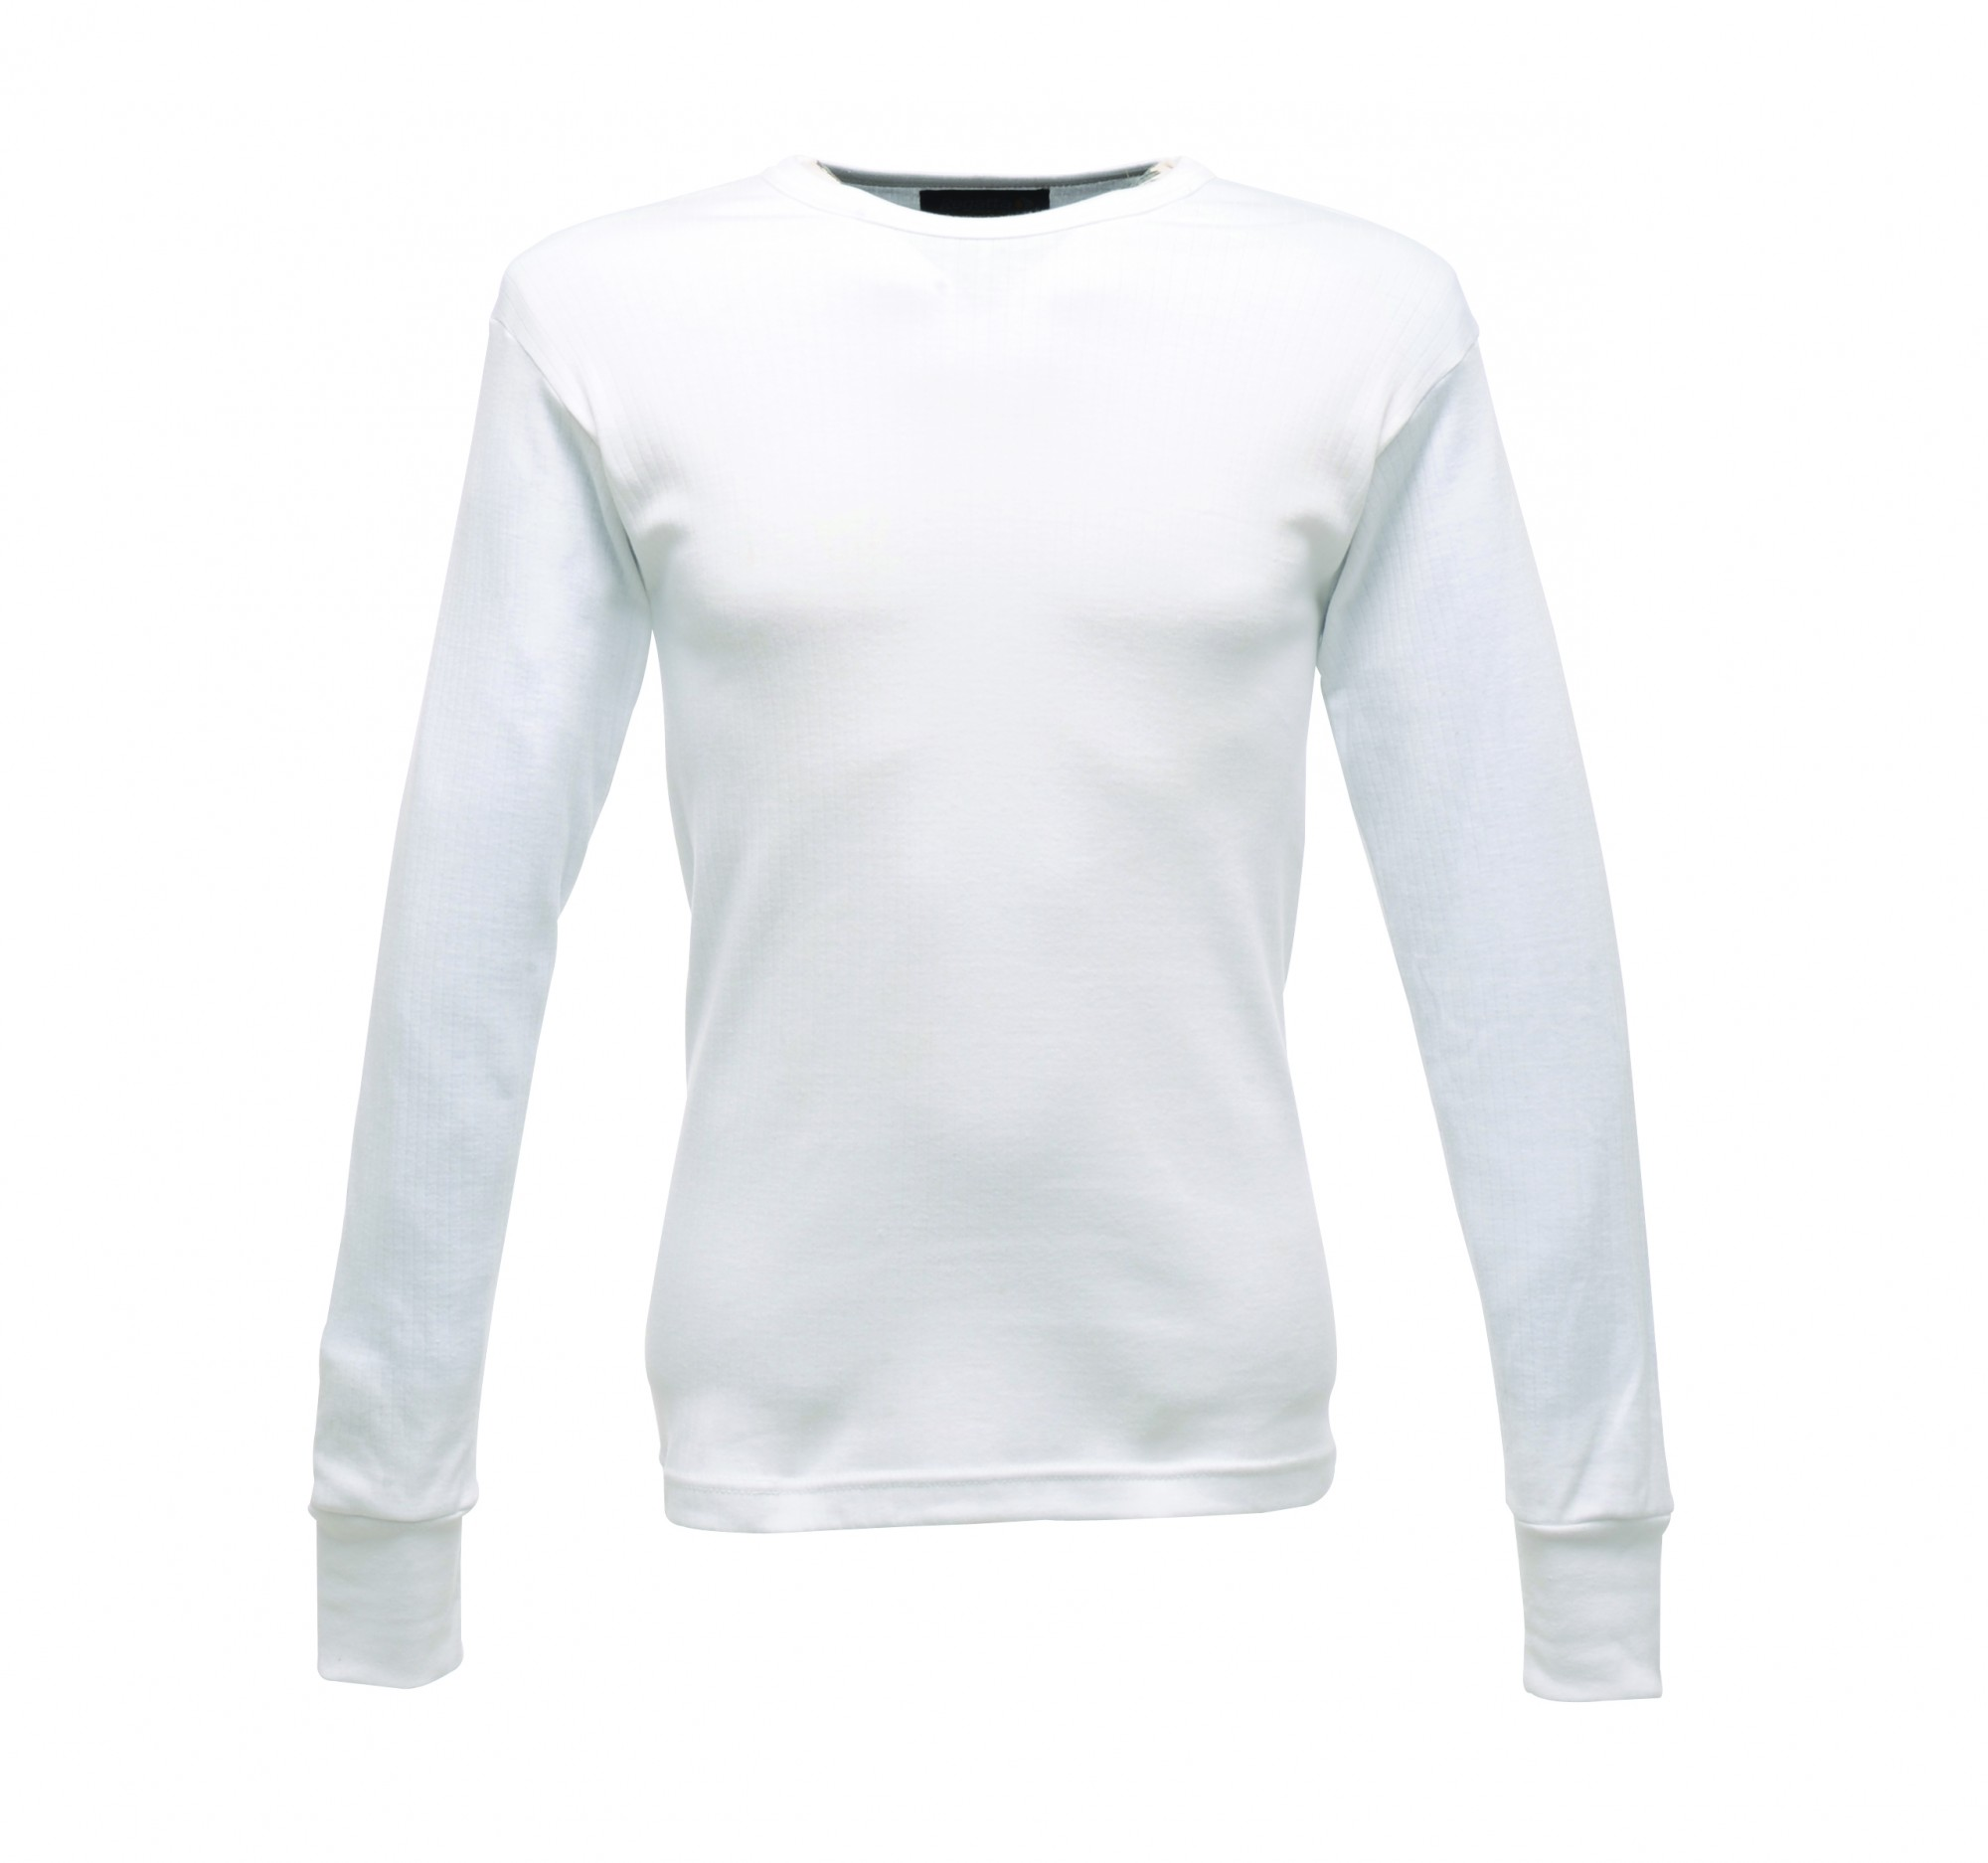 Long sleeve thermal t shirt g s mahal co ltd Thermal t shirt long sleeve